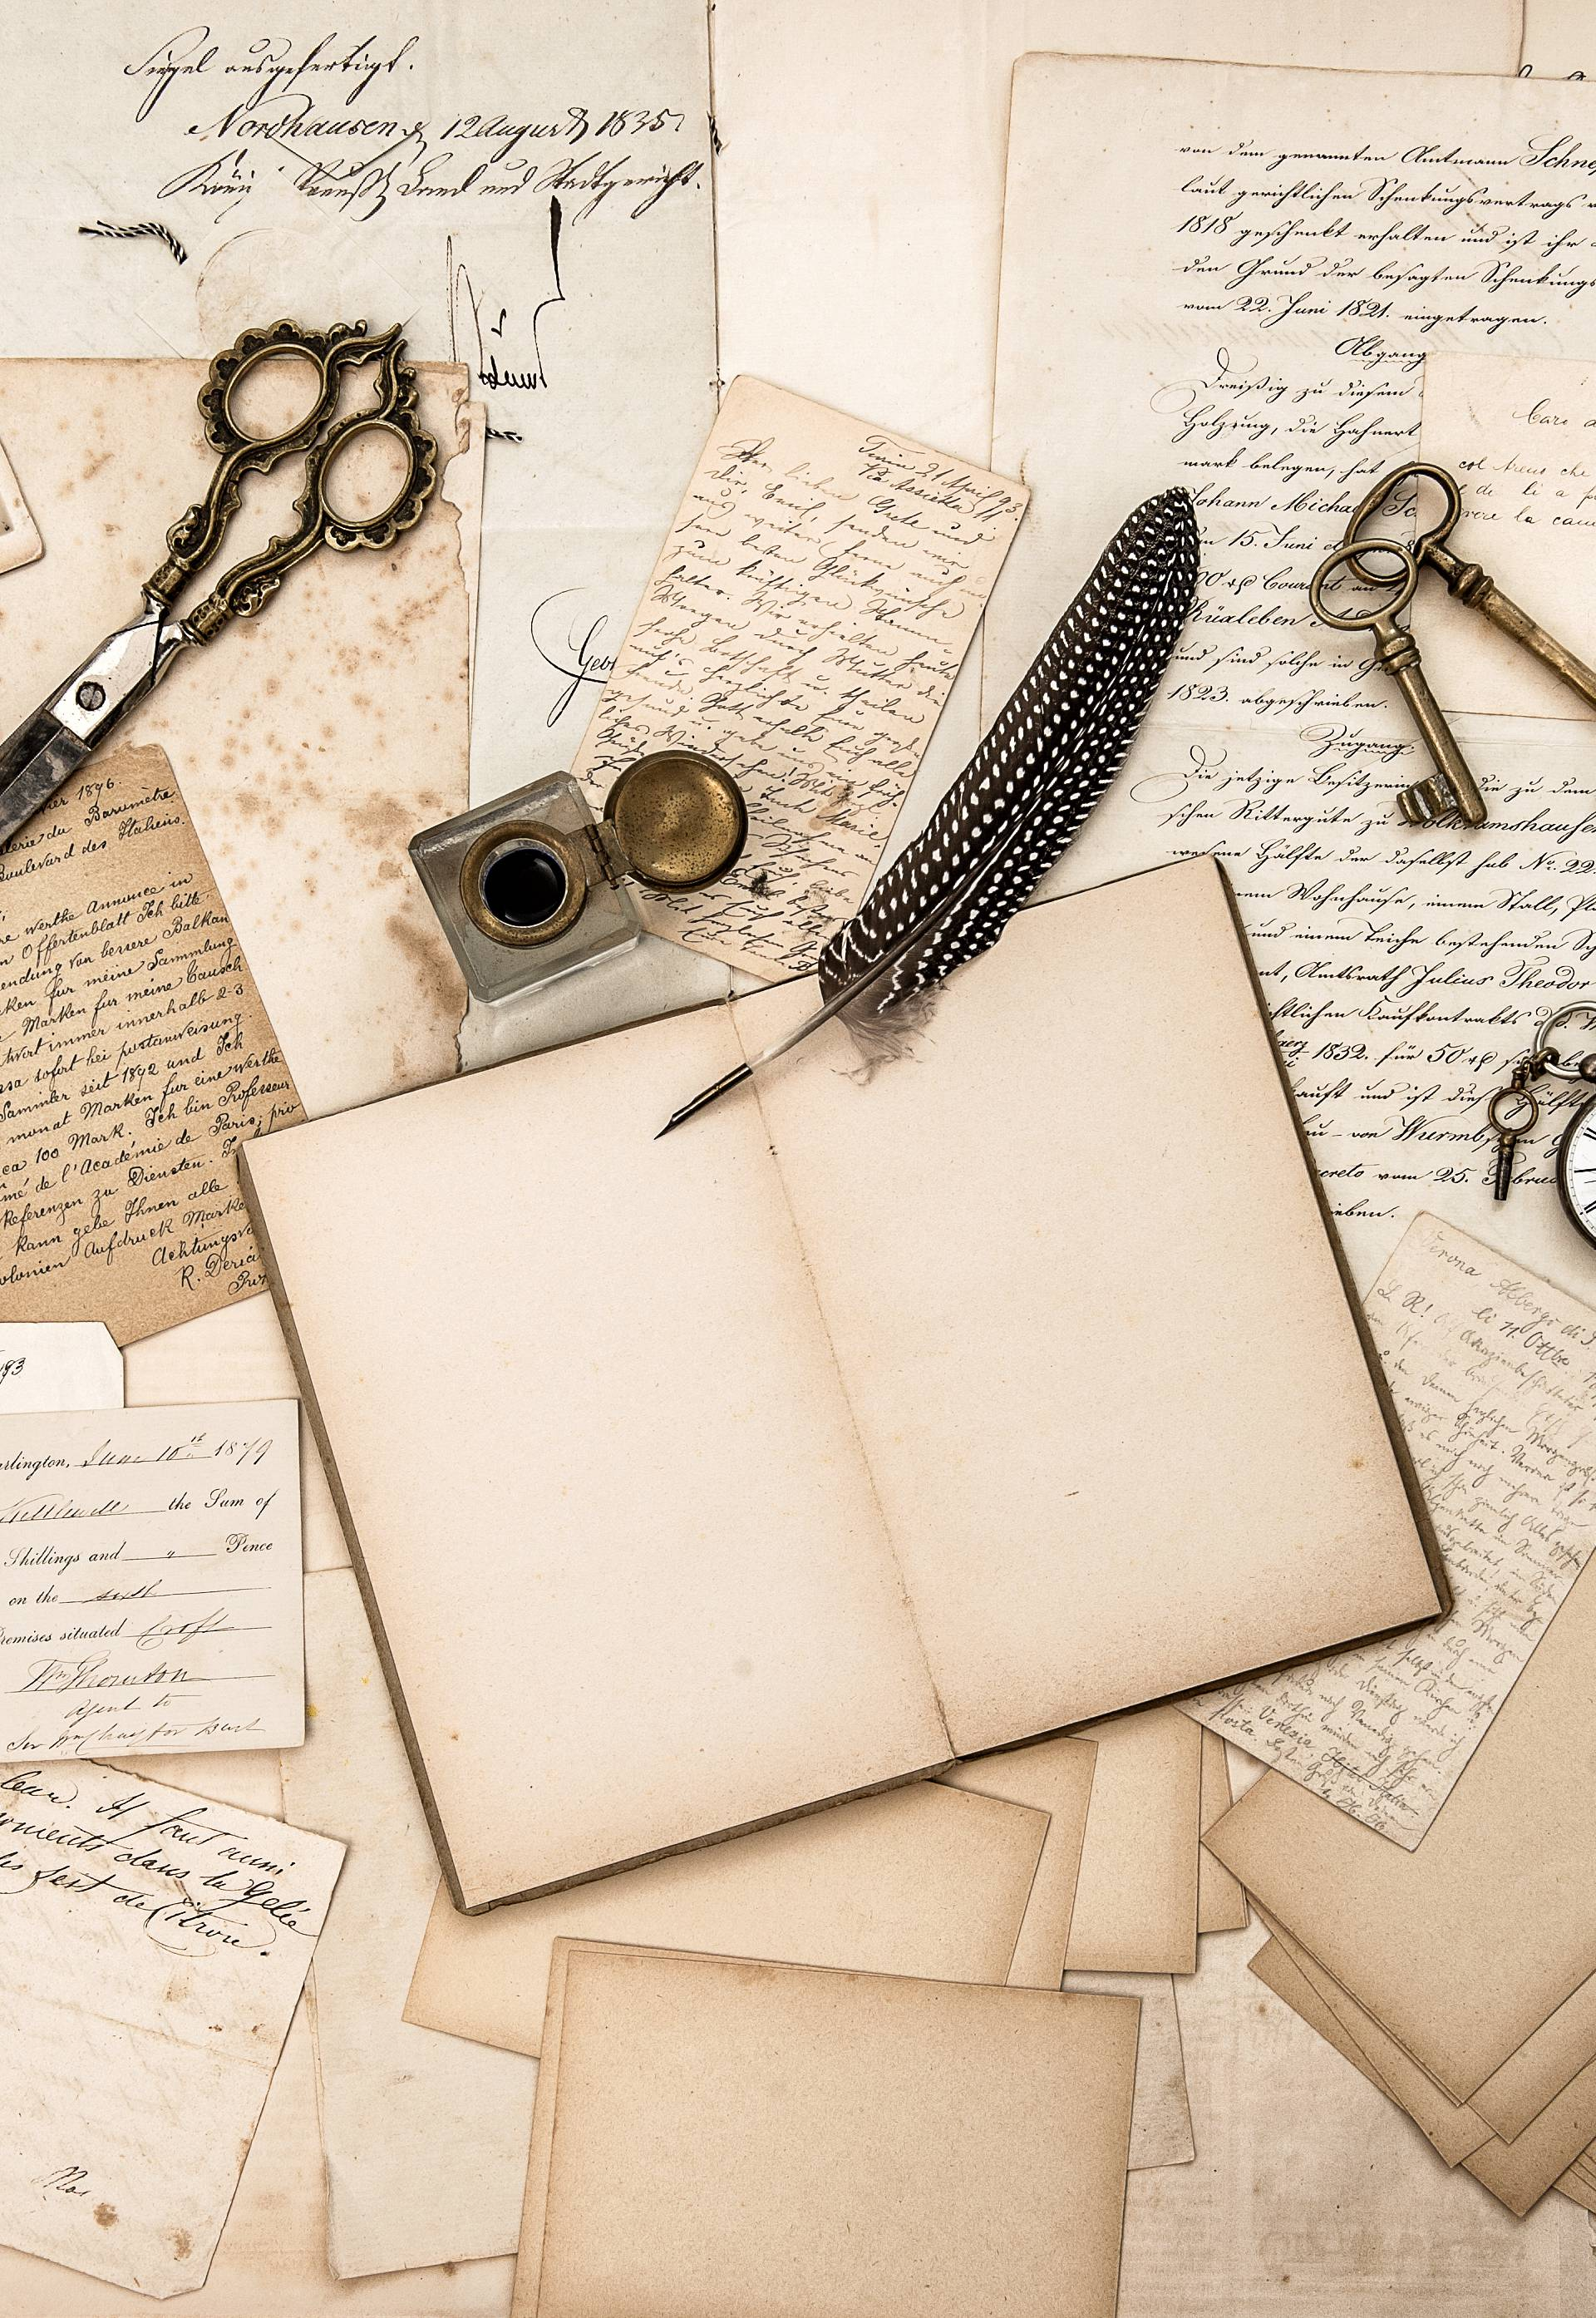 Old handwritten letters, pictures and antique writing accessories